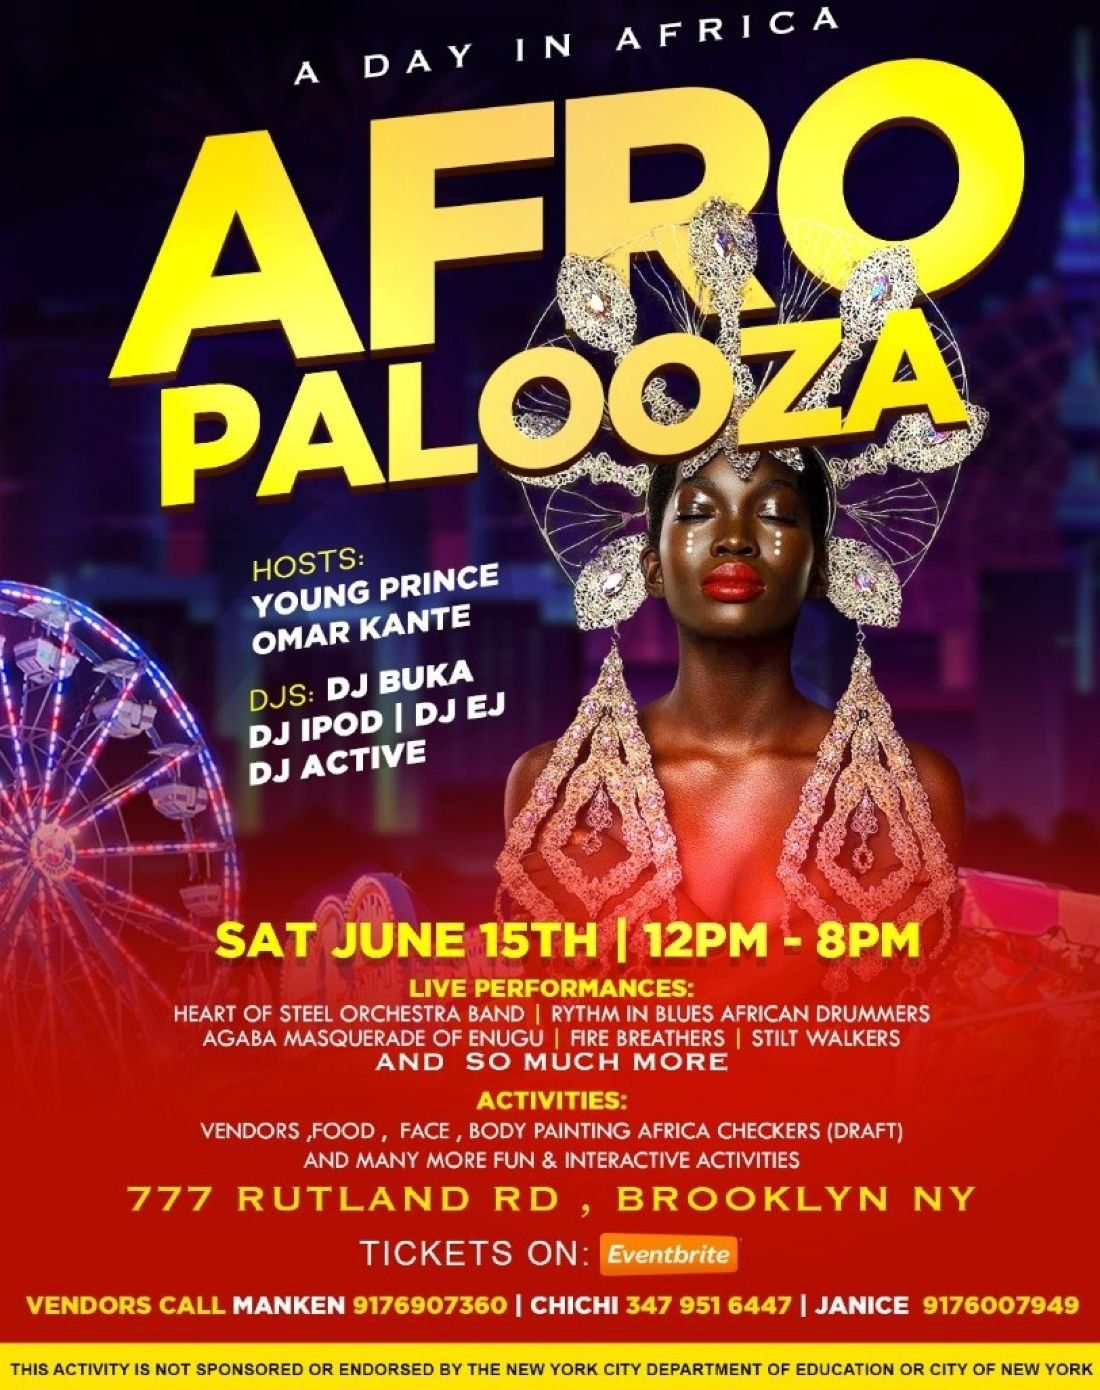 A Day In Africa Afropalooza